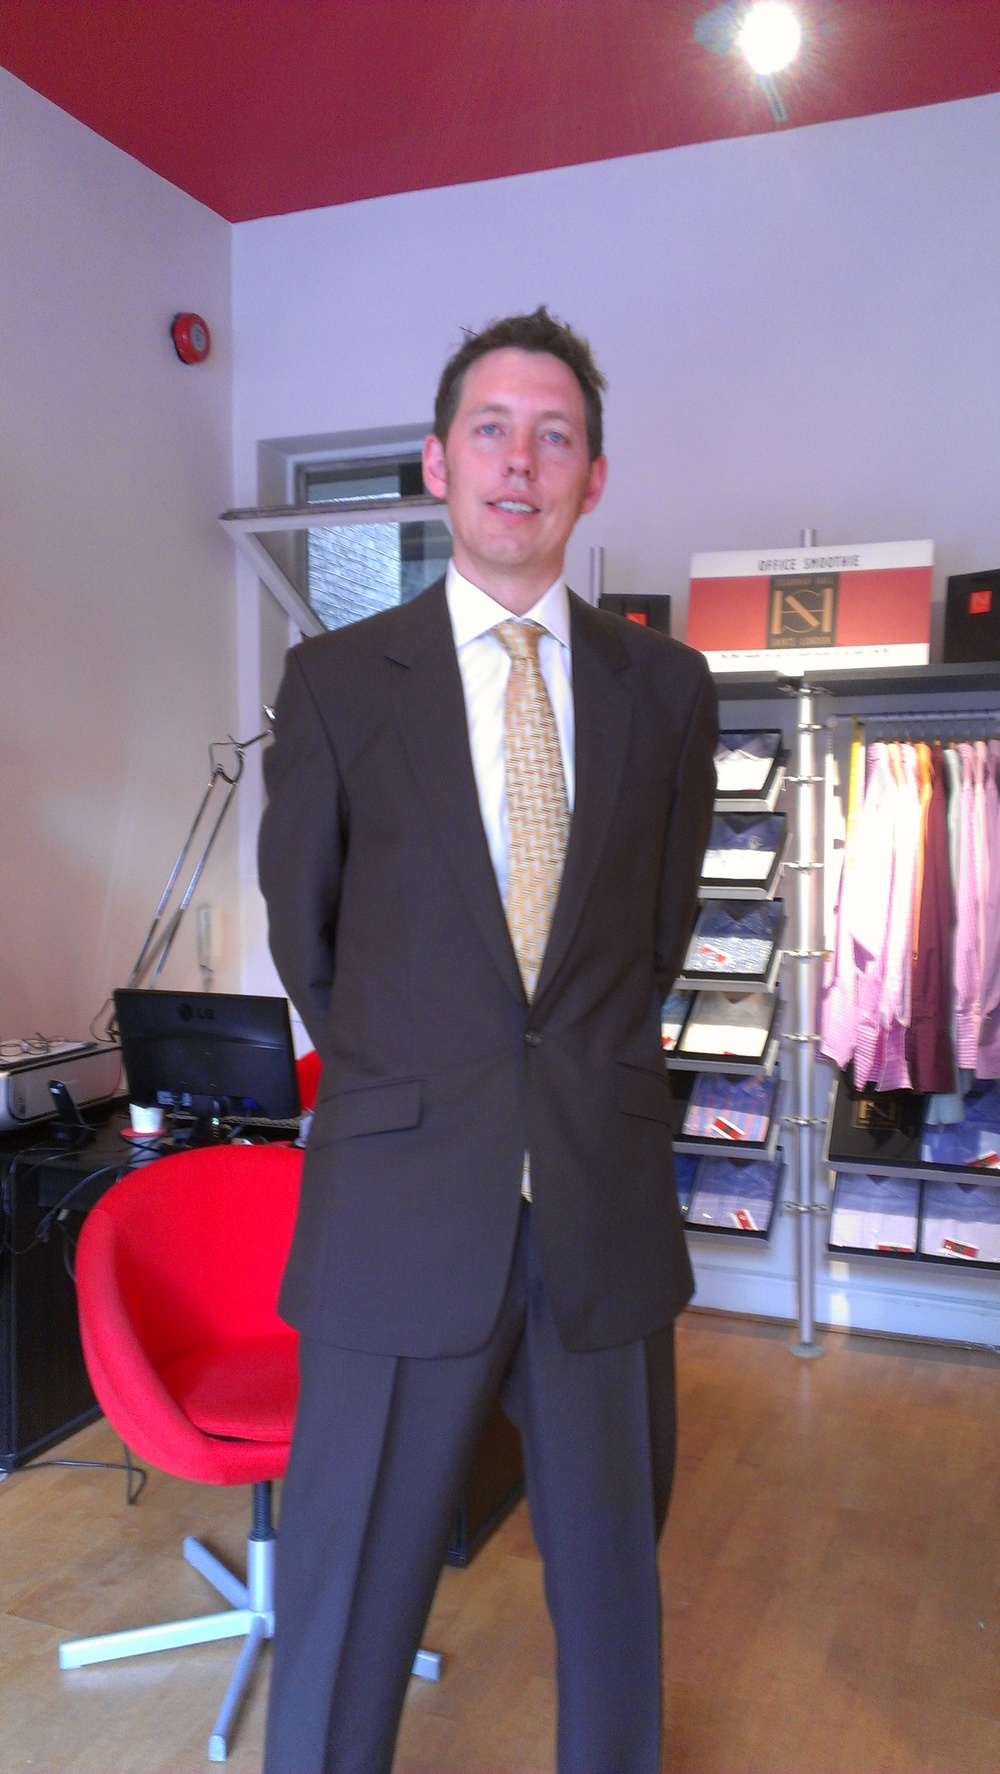 paul-bonner-chocolate-brown-midweight-wool-wedding-suit-all-uk-made-bespoke.jpg